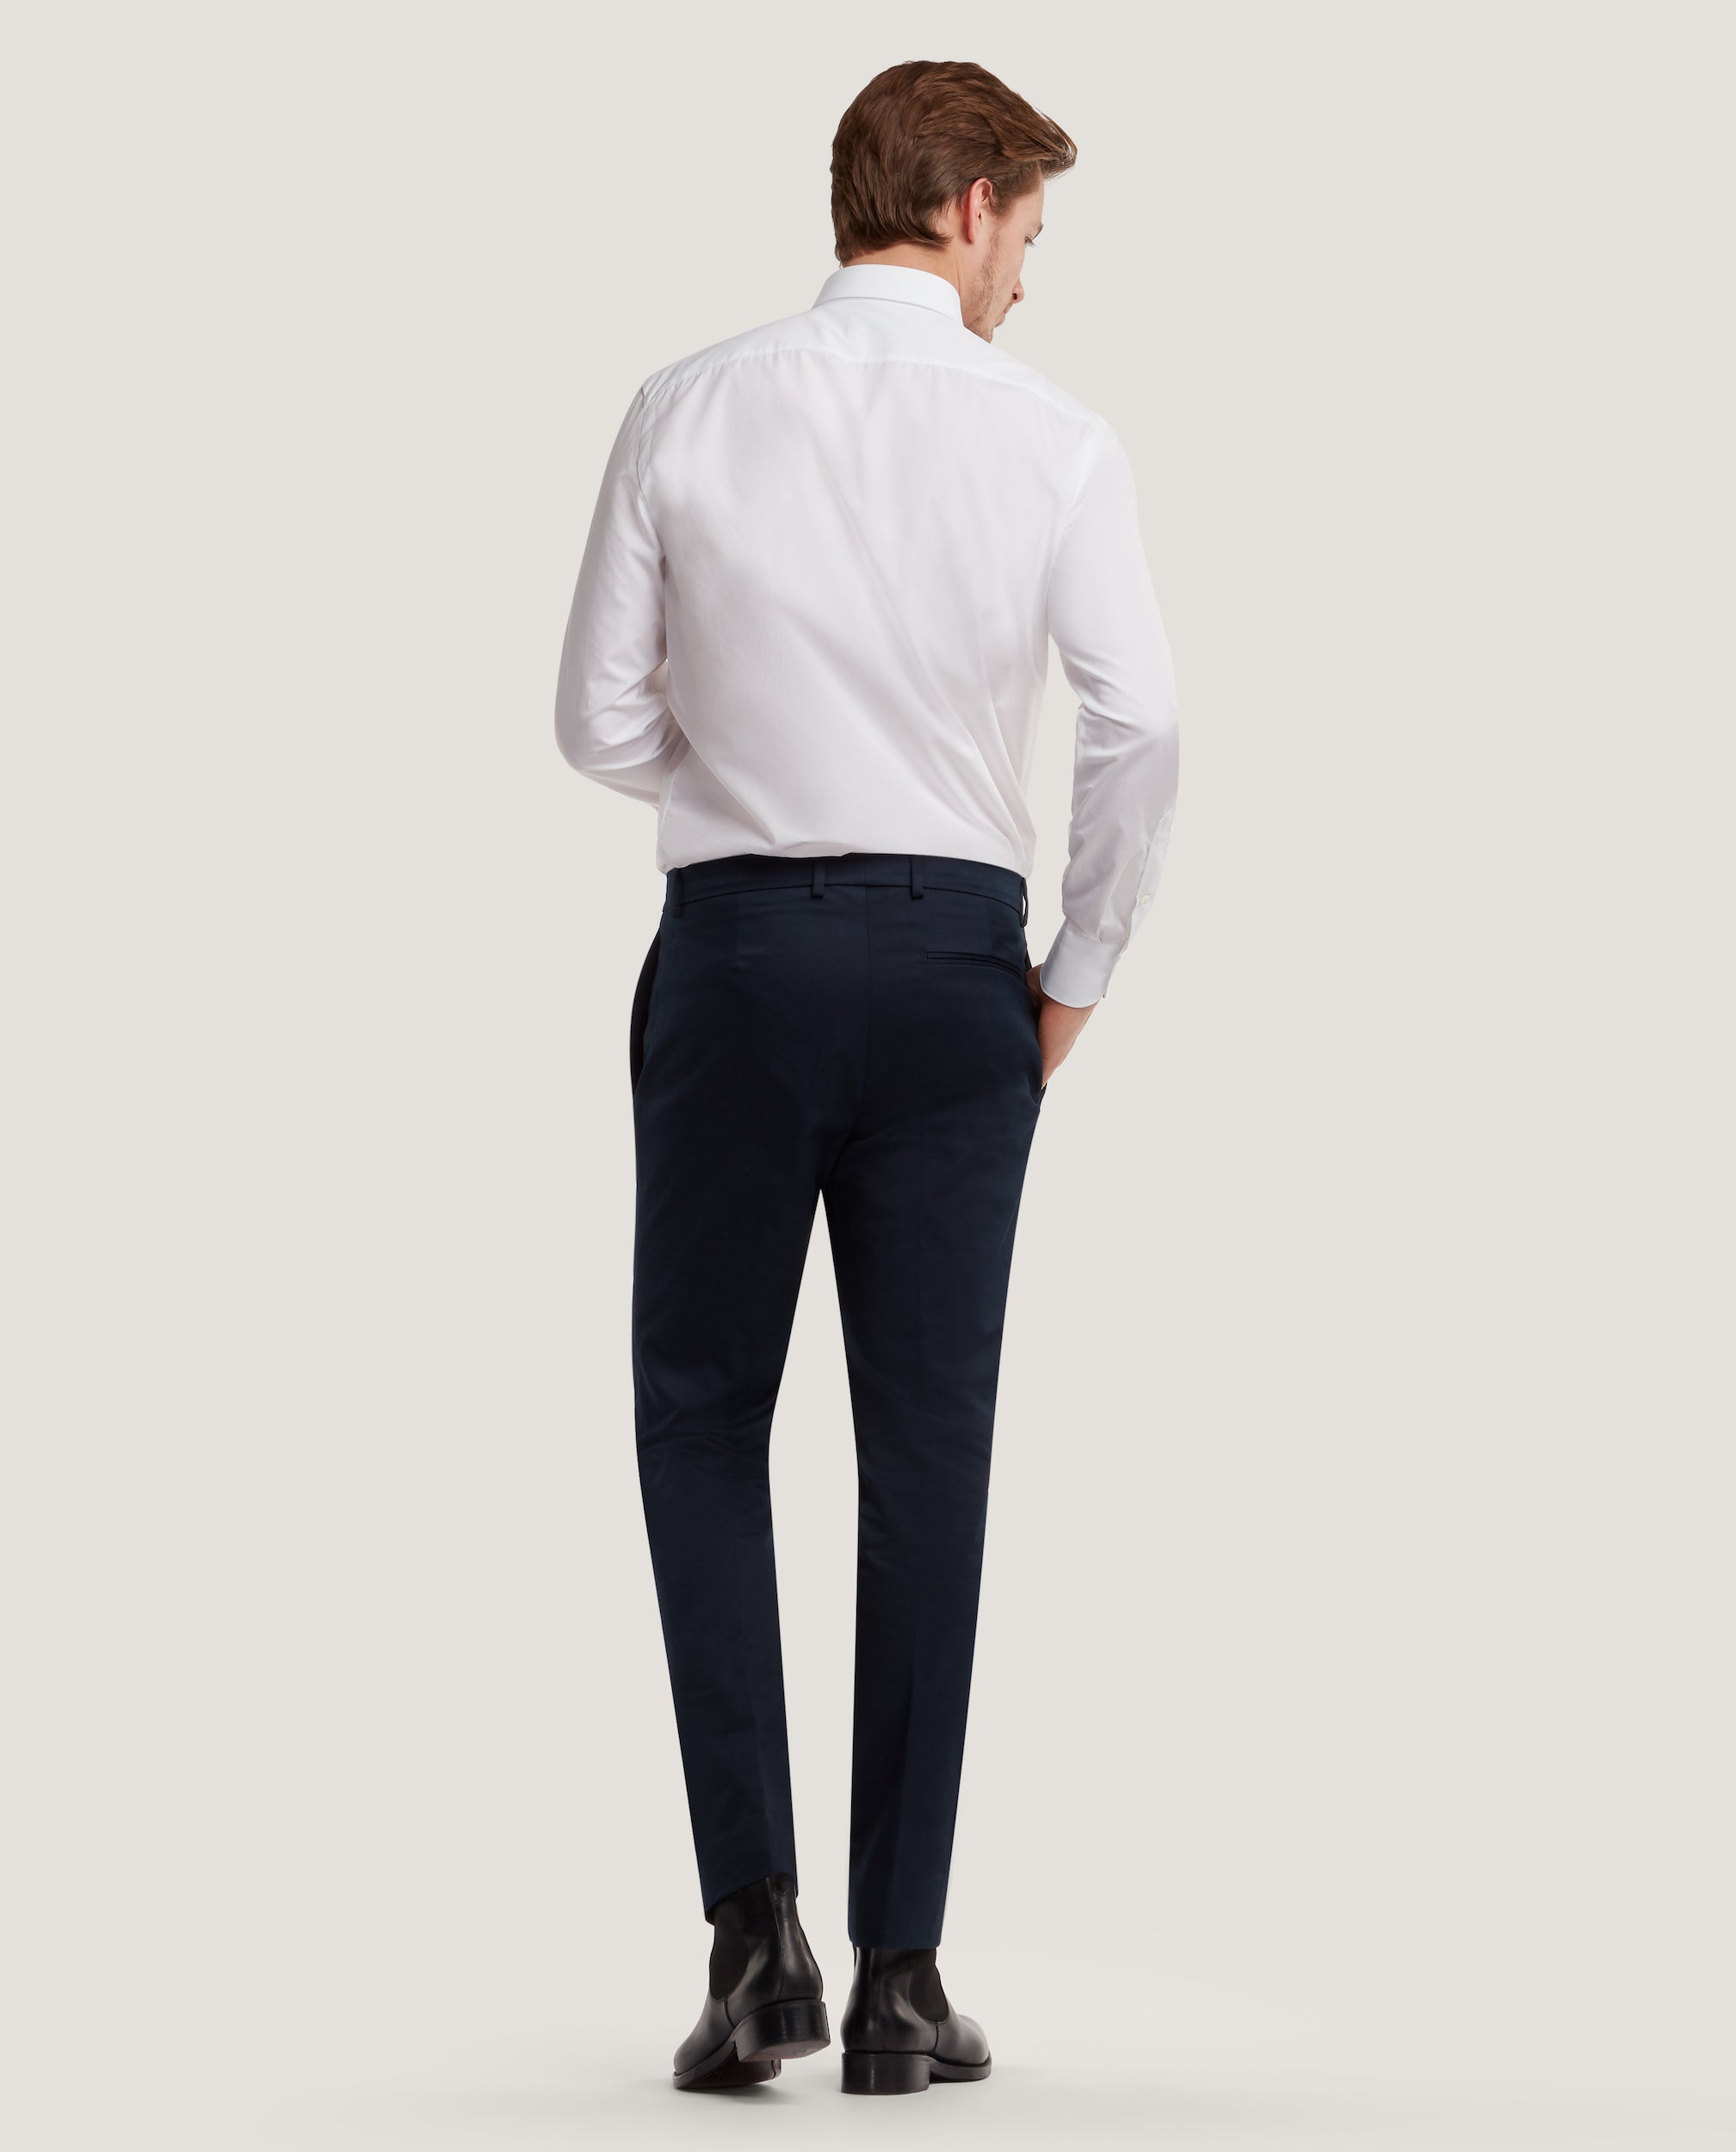 CASS Chino trousers | Slim fit | Cotton twill | Night Blue